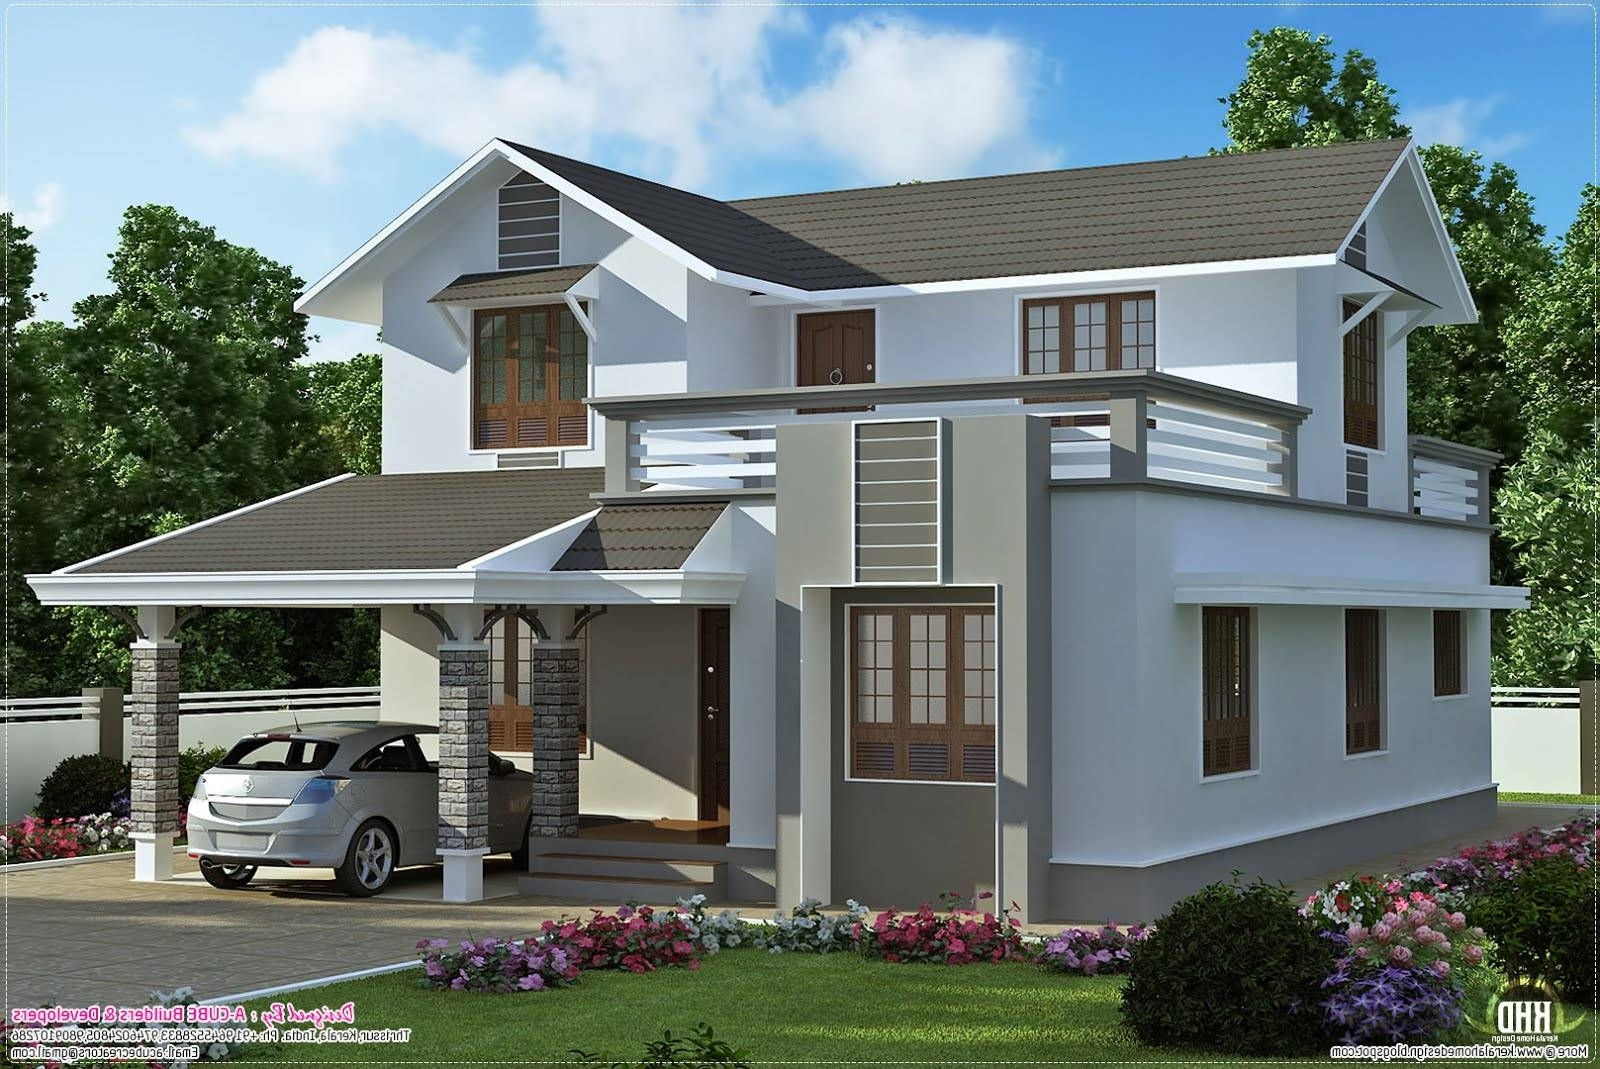 Modern Storey House Designs House Plans | #25148 10+ Low Cost 2 Storey Apartment Design Philippines Ideas